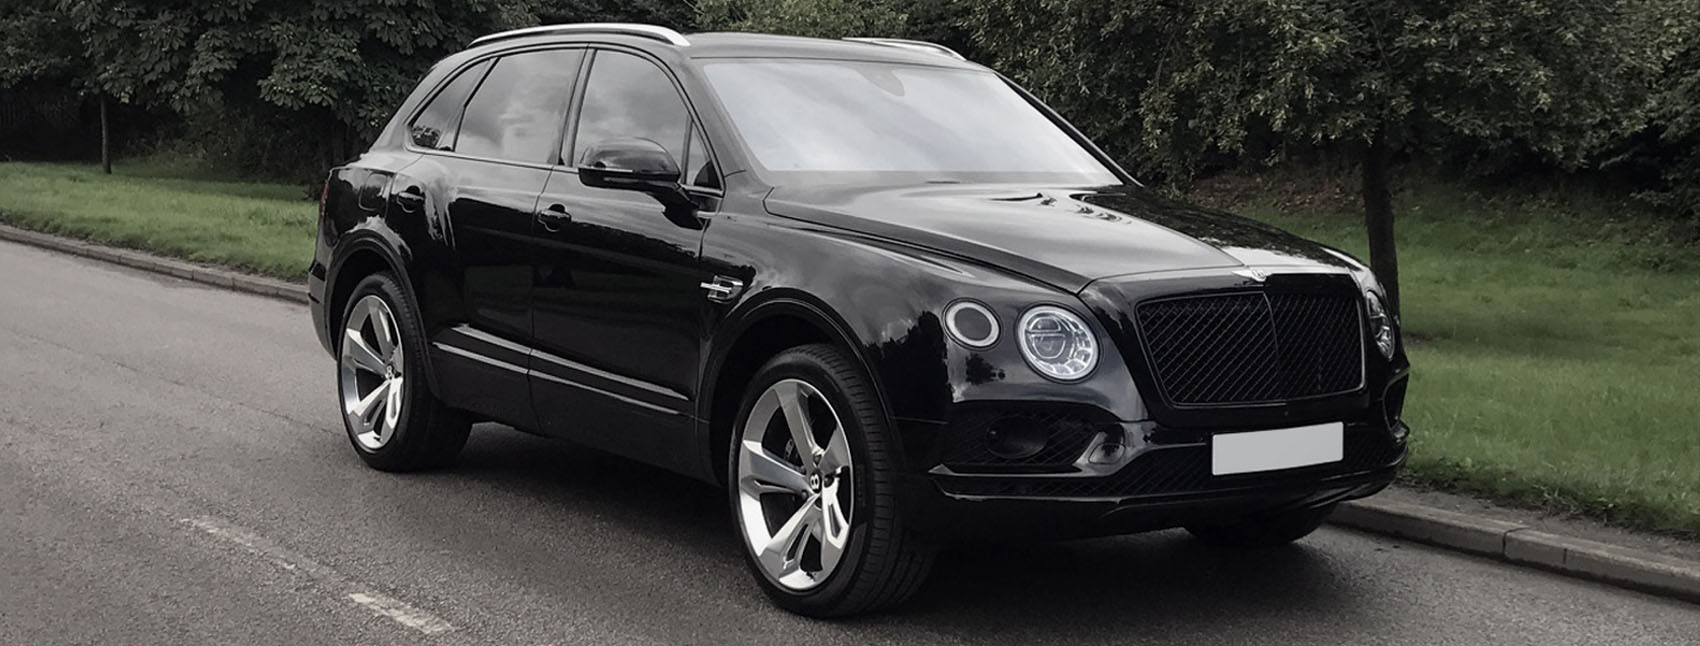 Bentley Bentayga Reforma UK Wrap